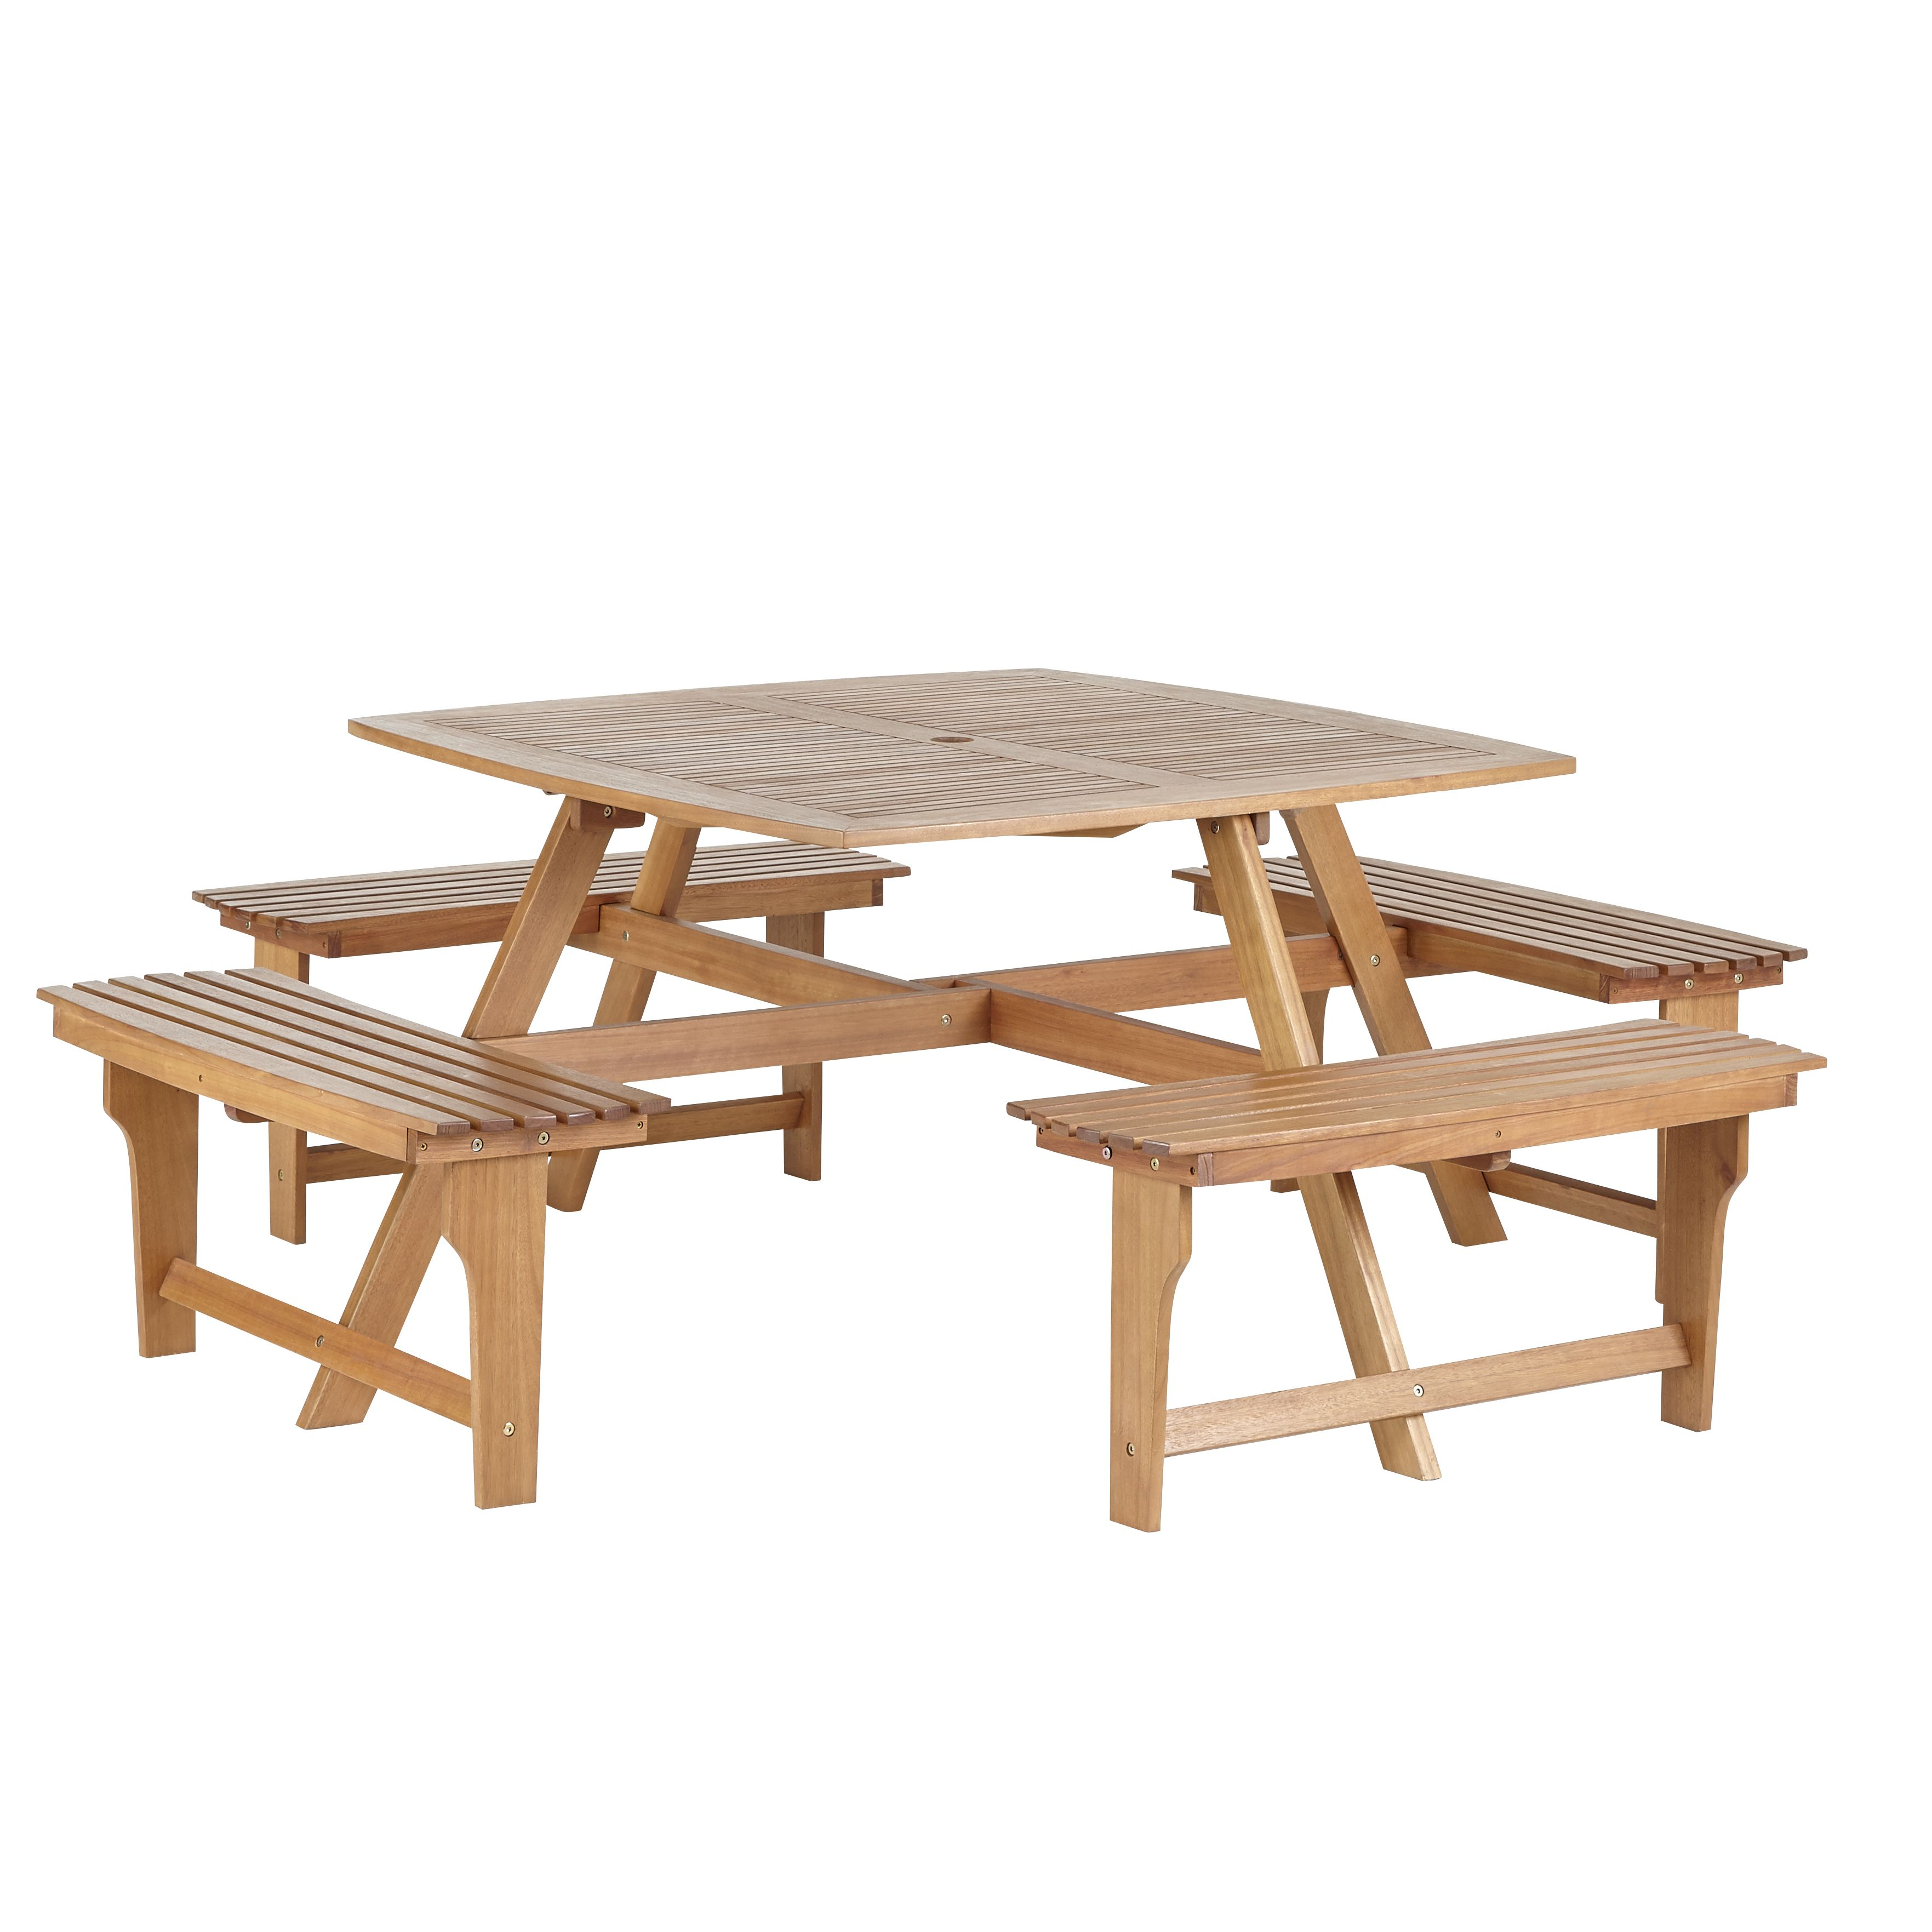 Very Impressive portraiture of Aland Wooden Picnic Bench Departments DIY at B&Q with #53200D color and 3526x3526 pixels